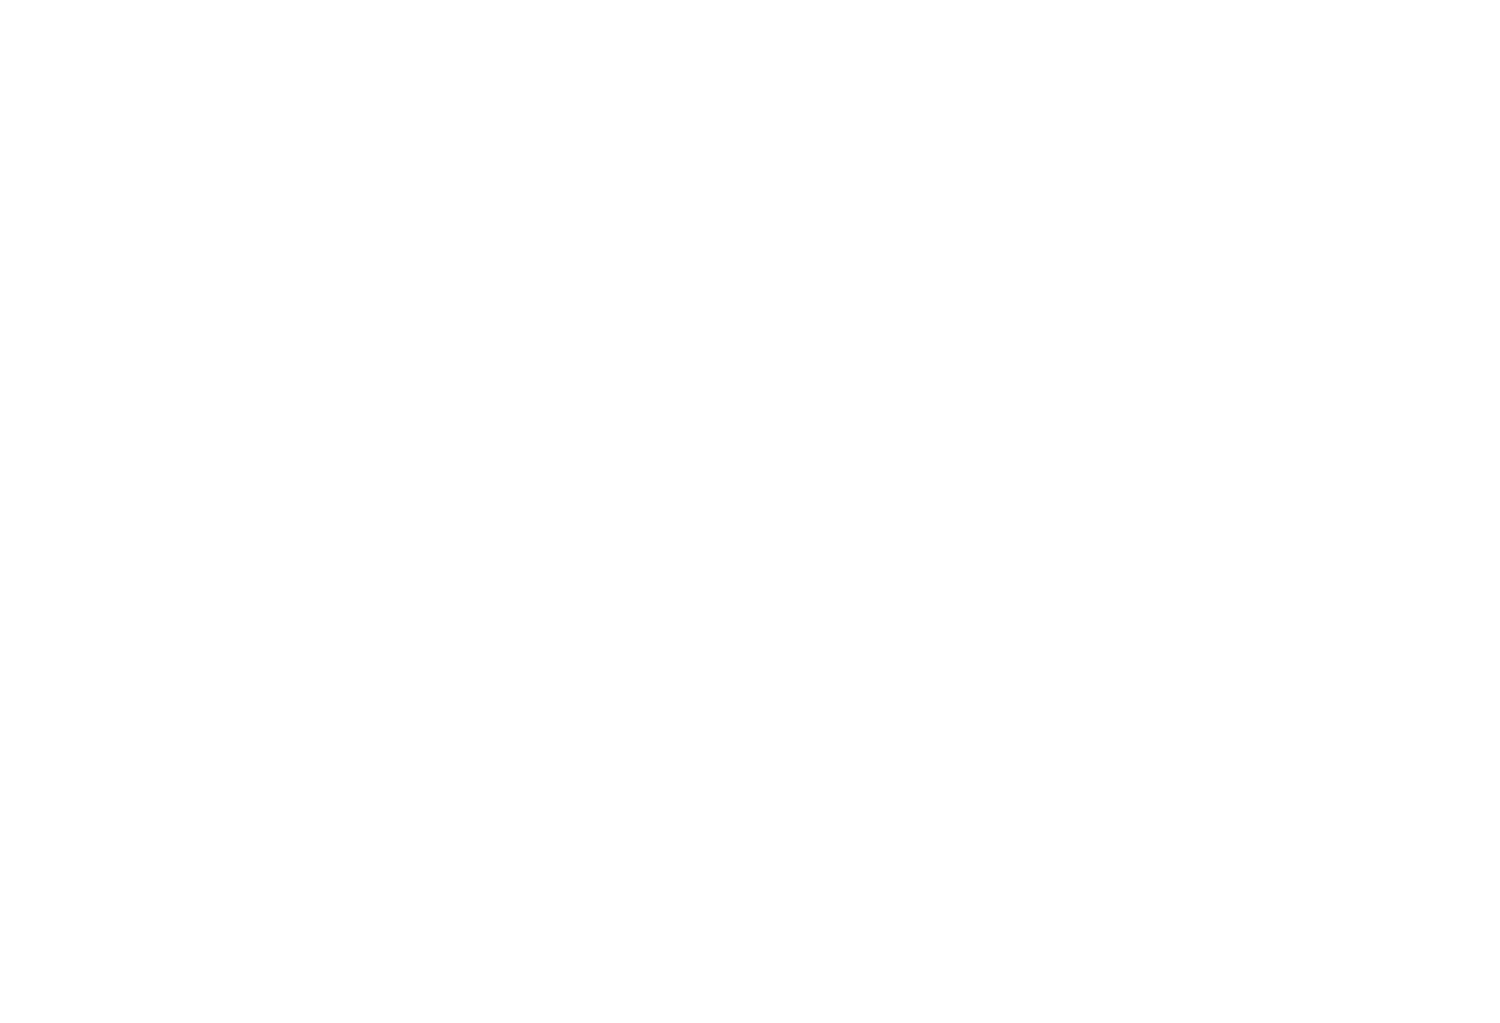 the TDC Laser Center